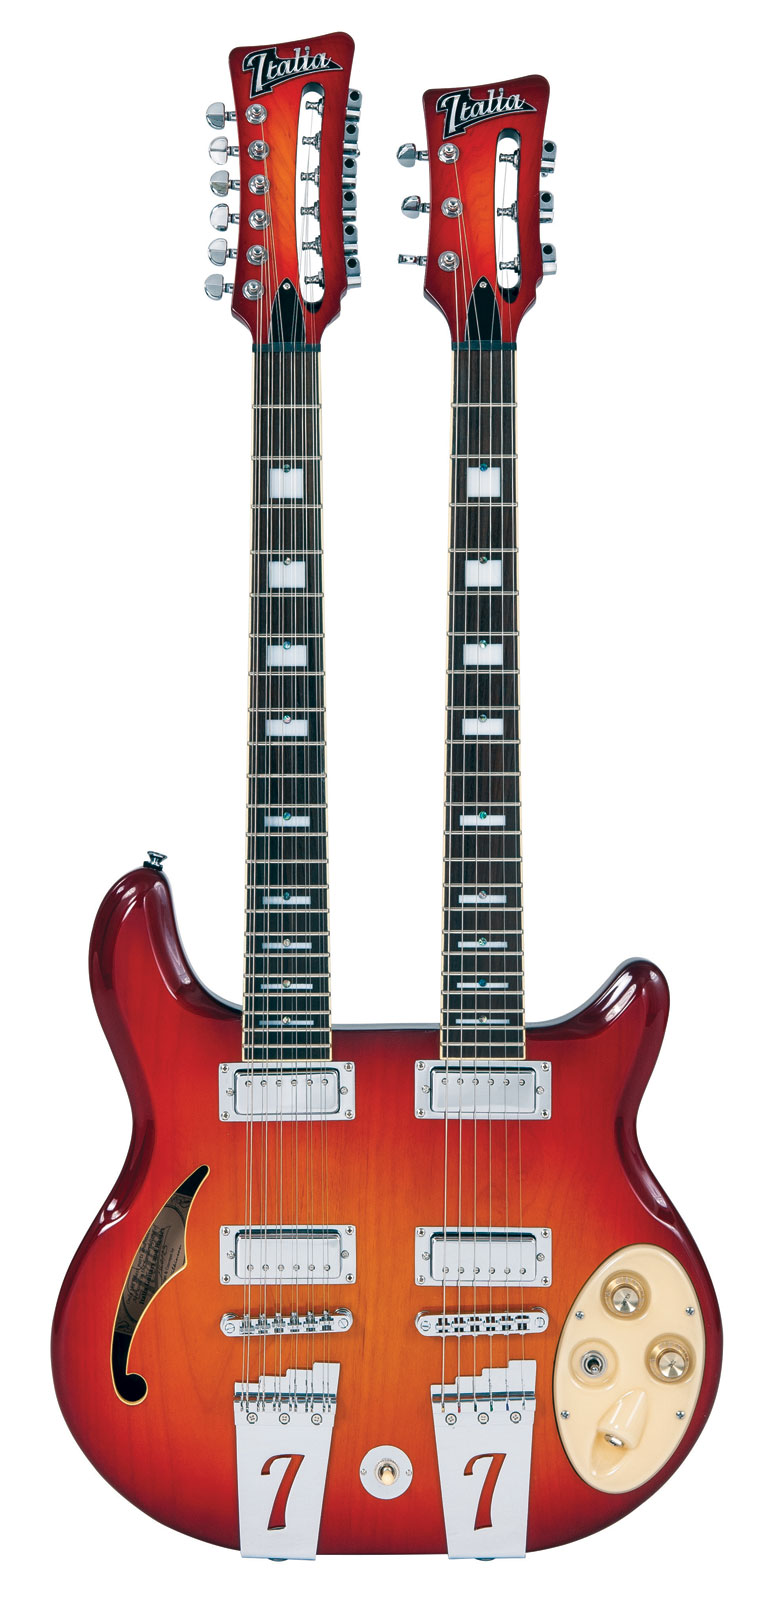 Italia Rimini Twin Cherry Sunburst + Housse Deluxe